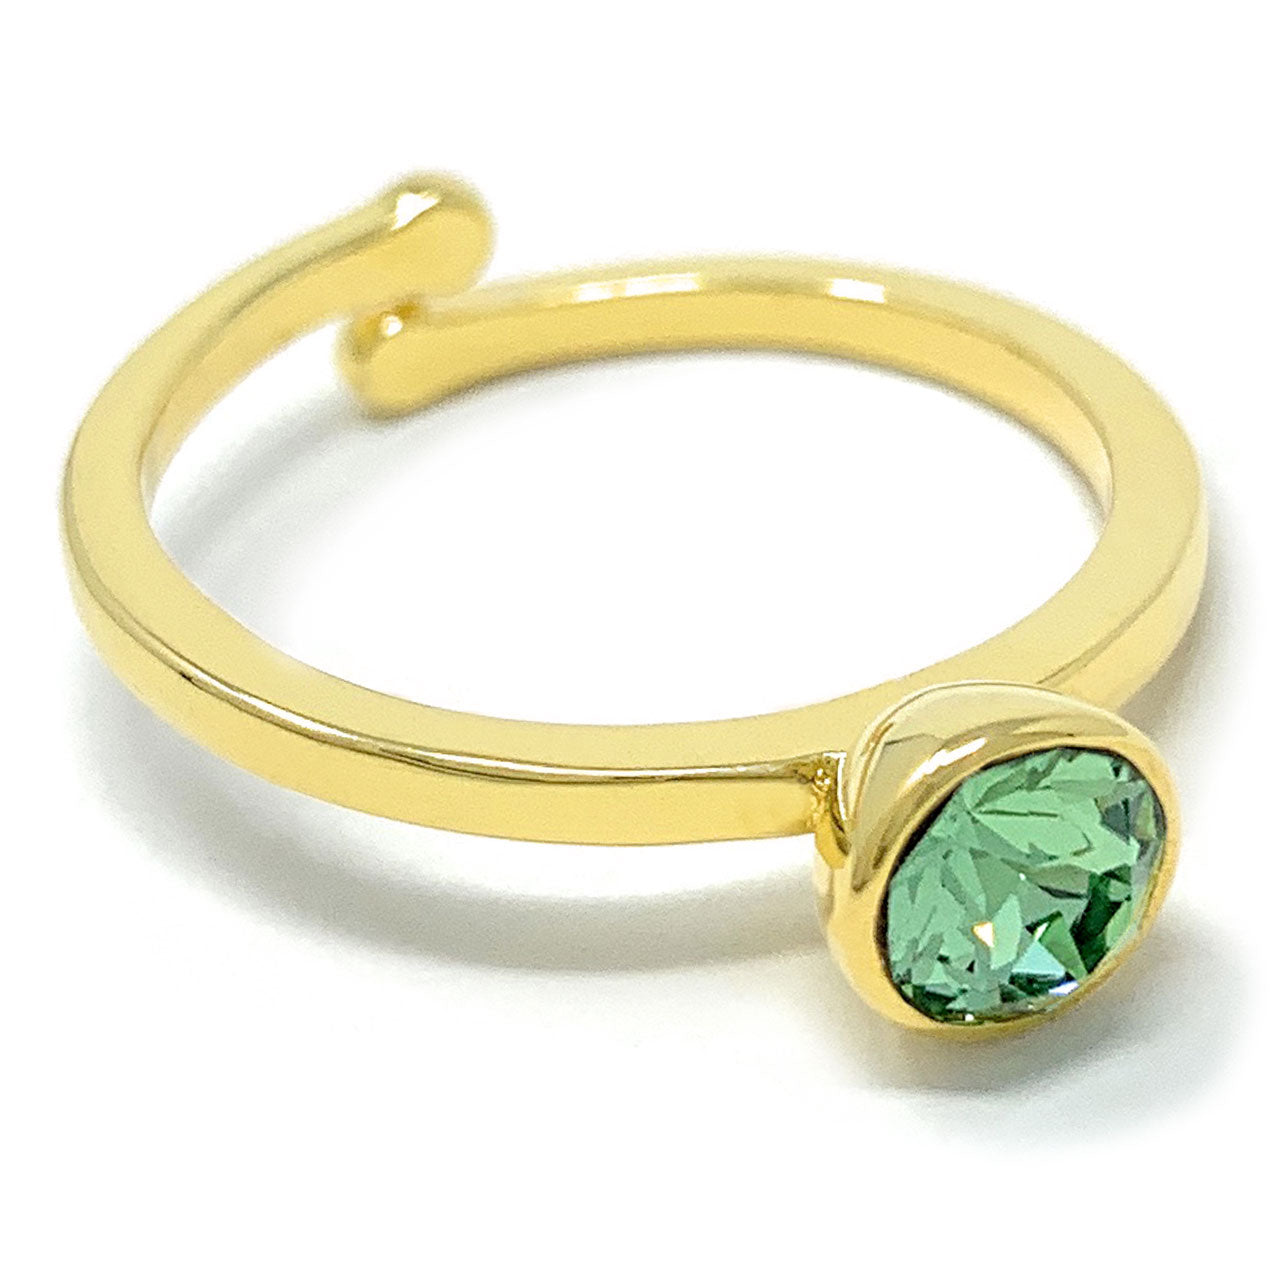 Harley Adjustable Ring with Green Peridot Round Crystals from Swarovski Gold Plated - Ed Heart